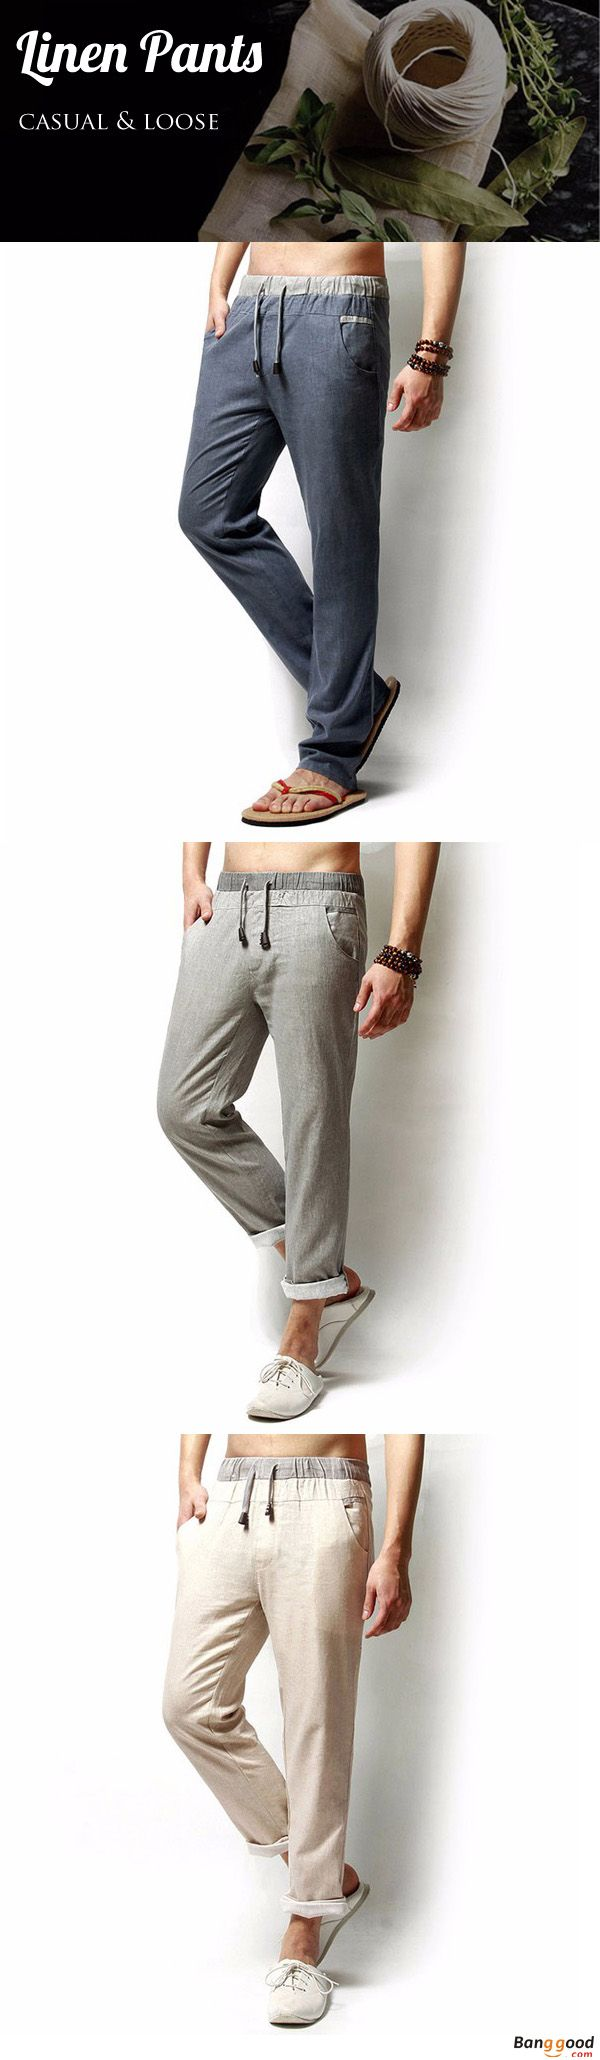 US$24.99 + Free Shipping. Linen Pants, Solid Color Pants, Casual Pants, Loose Pants, Men Long Trousers, Flax Leisure Pants. Color: Navy, Black, Green, Light Gray, Beige. Here Goes Your New Look, Check it All.